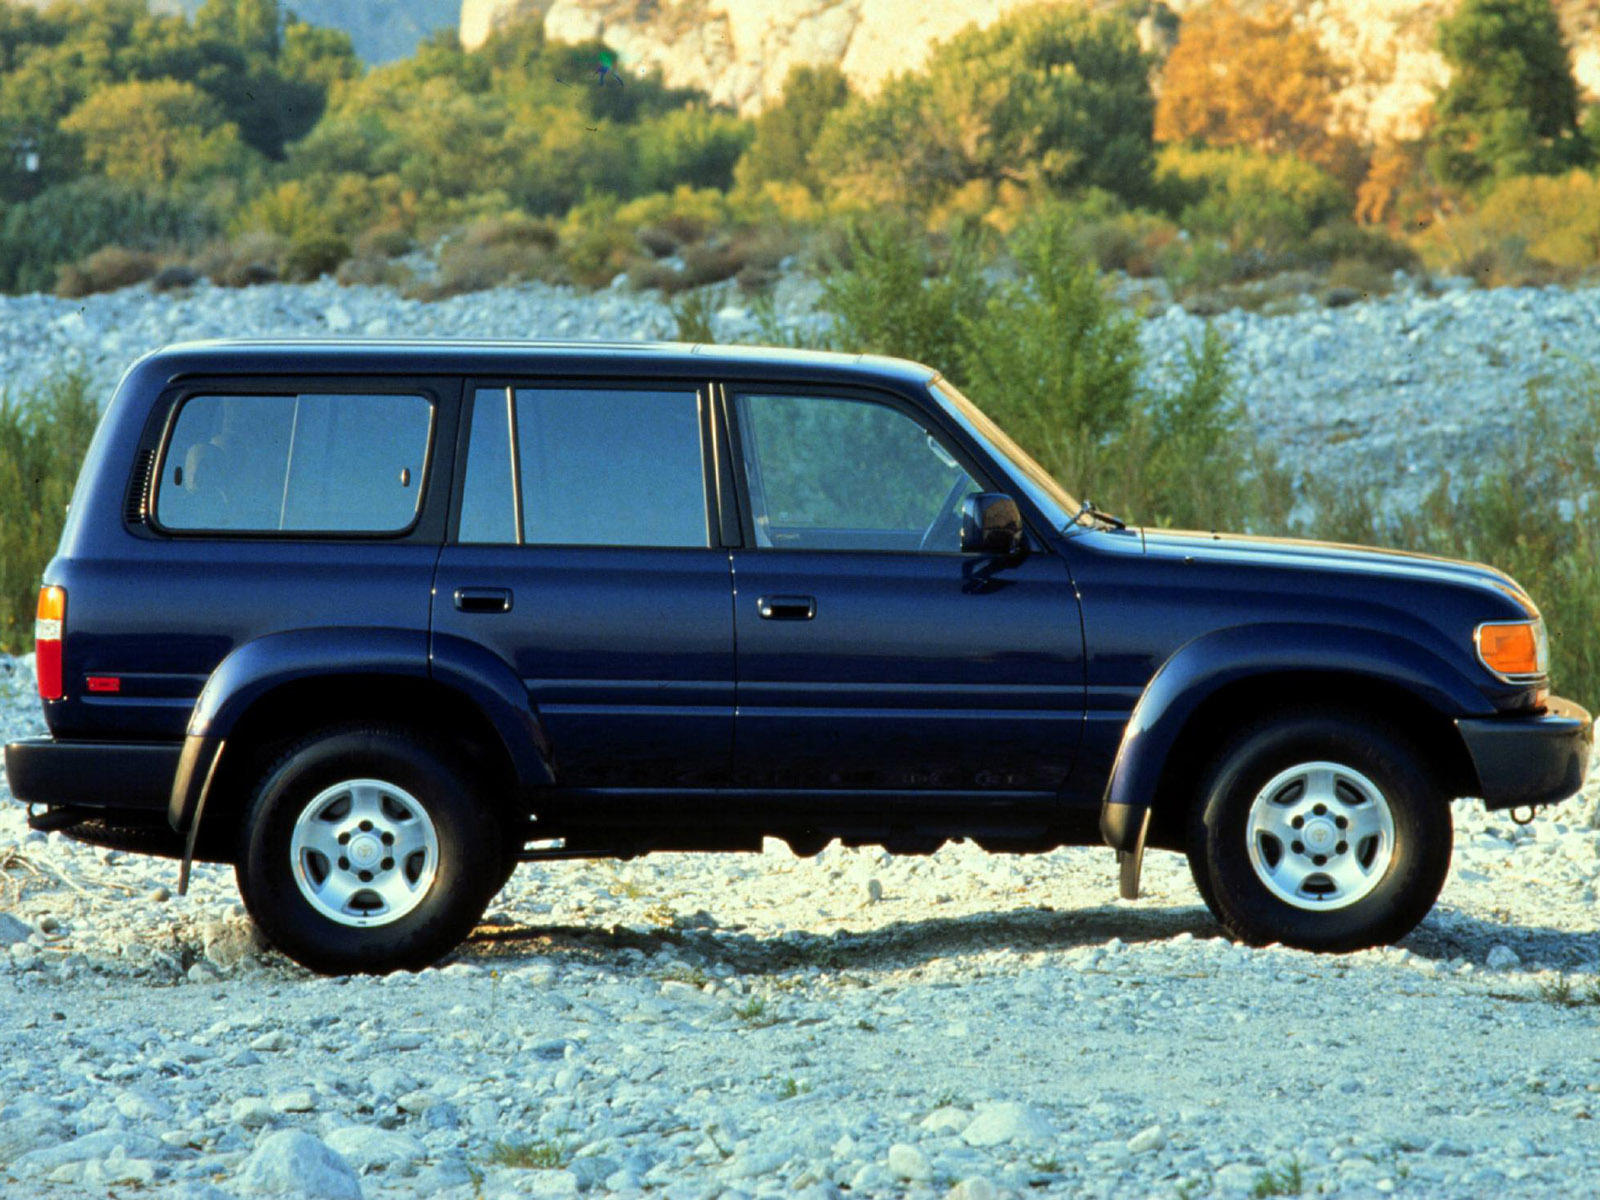 70s To 90s 4x4 Suv For Sale | Autos Post